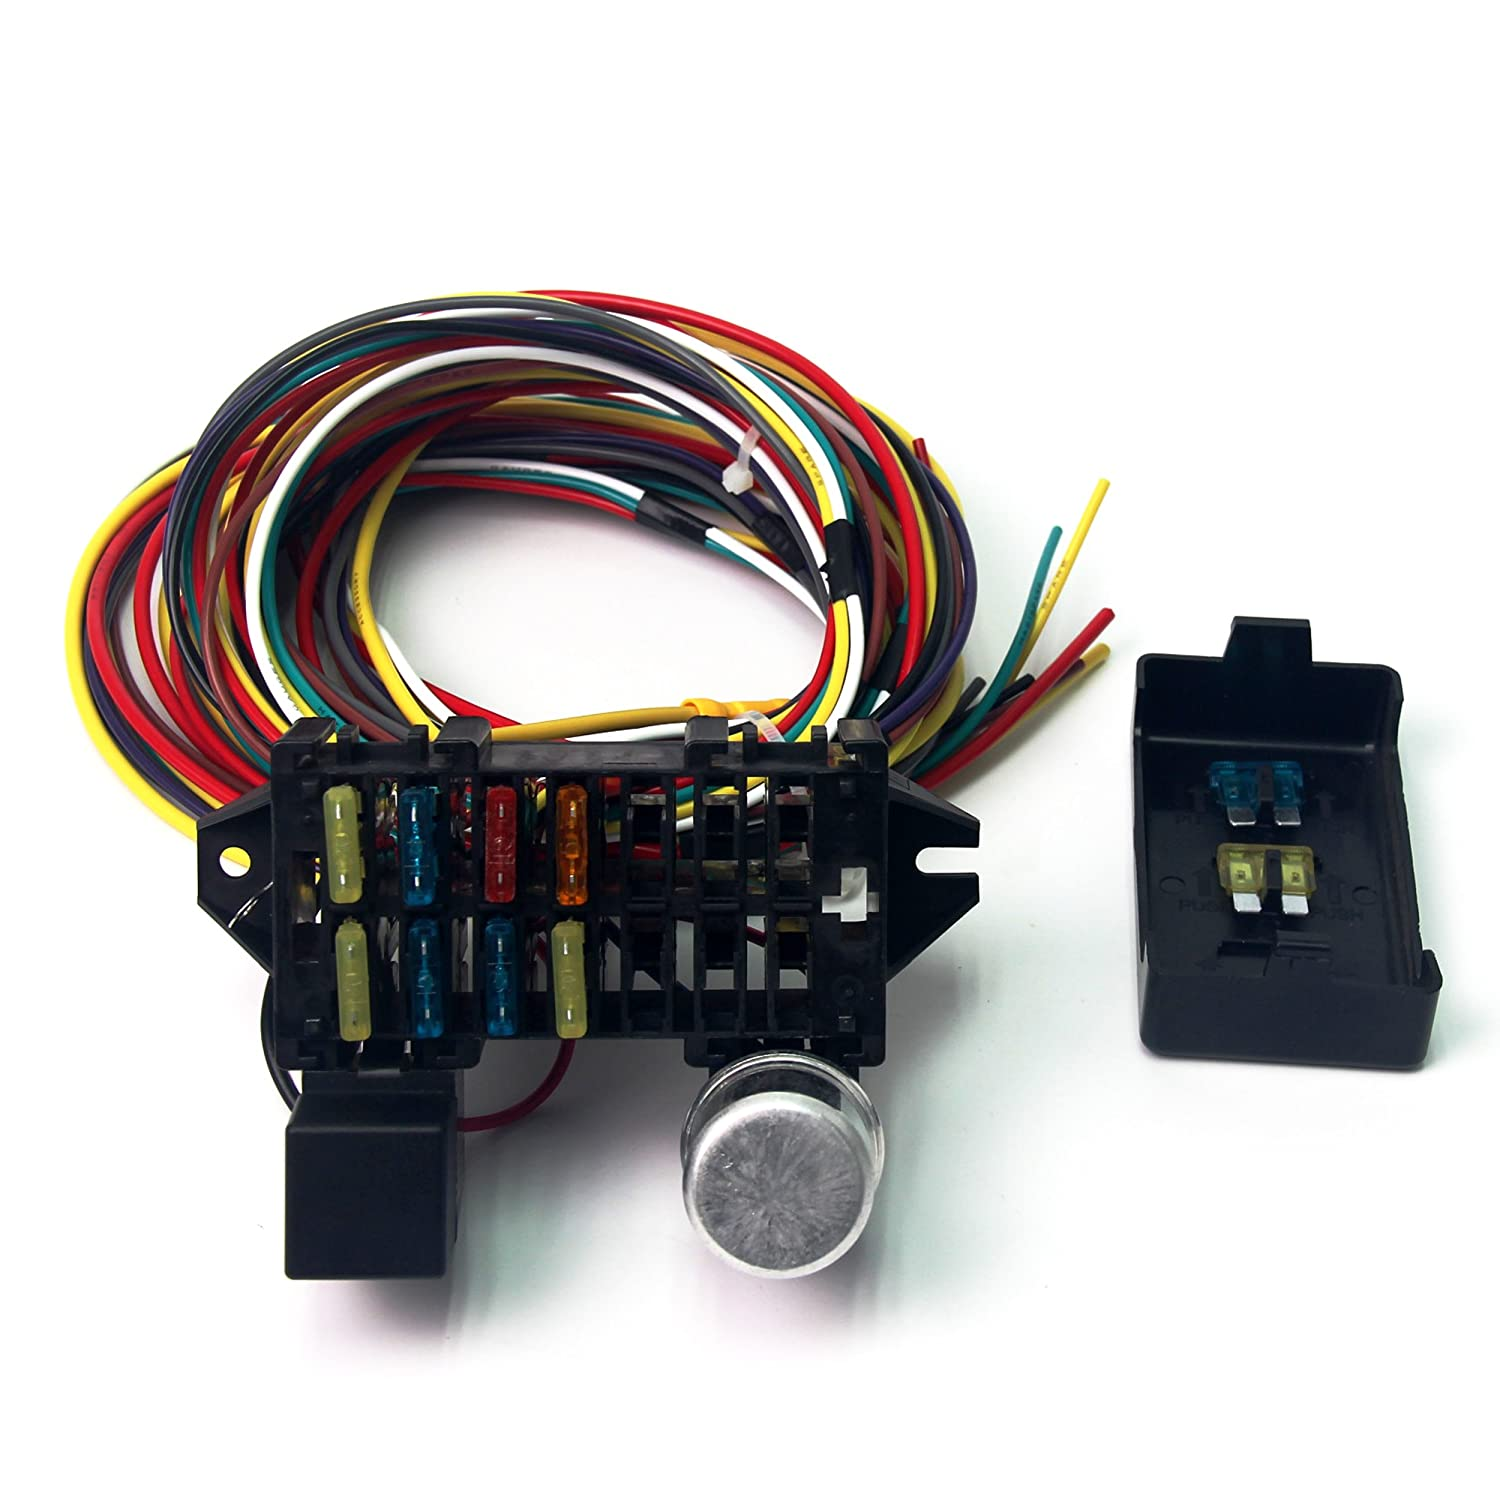 818OhNpuI4L._SL1500_ amazon com wisamic 10 circuit basic wiring harness fuse box hot rod wiring harness universal at alyssarenee.co